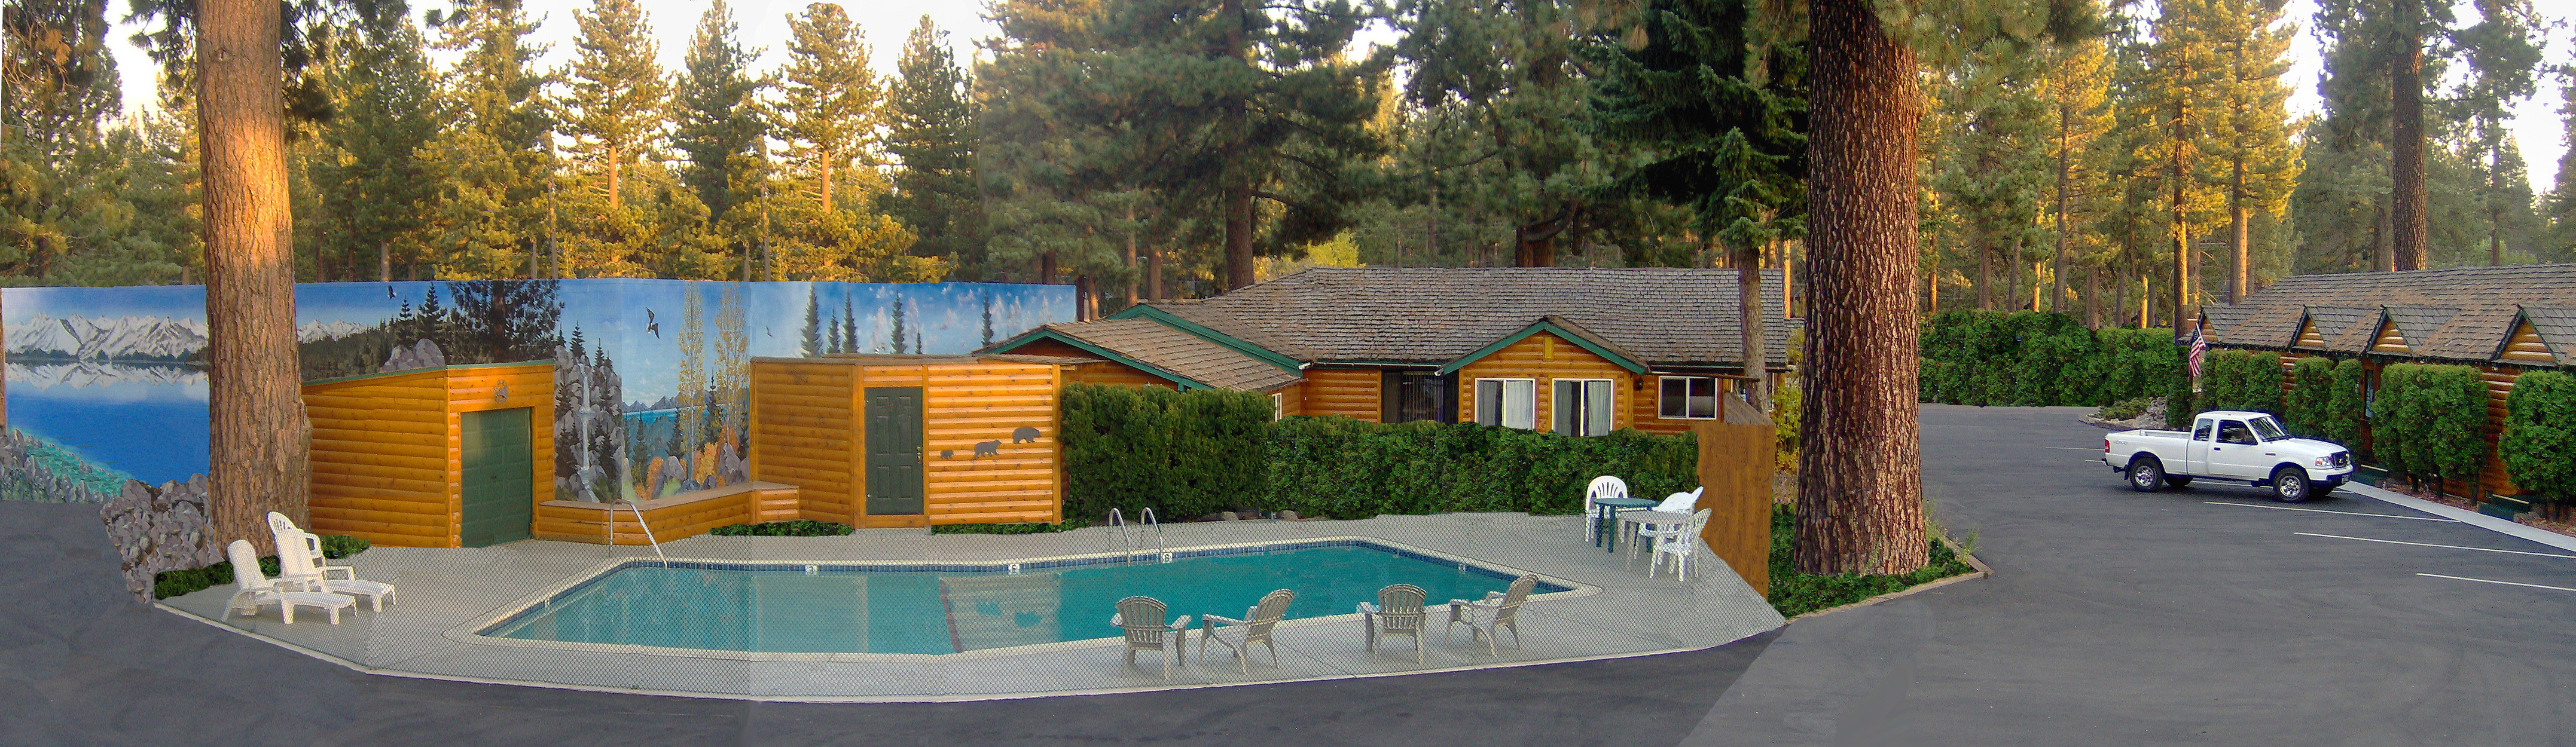 Heated Pool for Summer